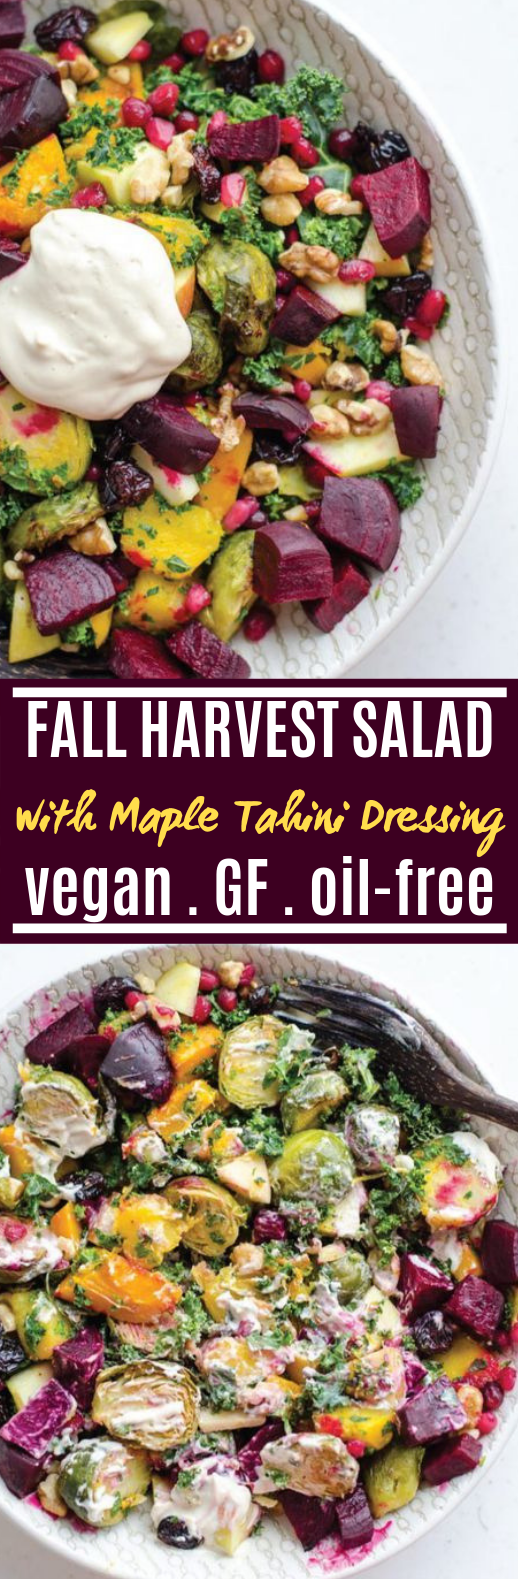 Fall Harvest Salad with Maple Tahini Dressing #healthy #salad